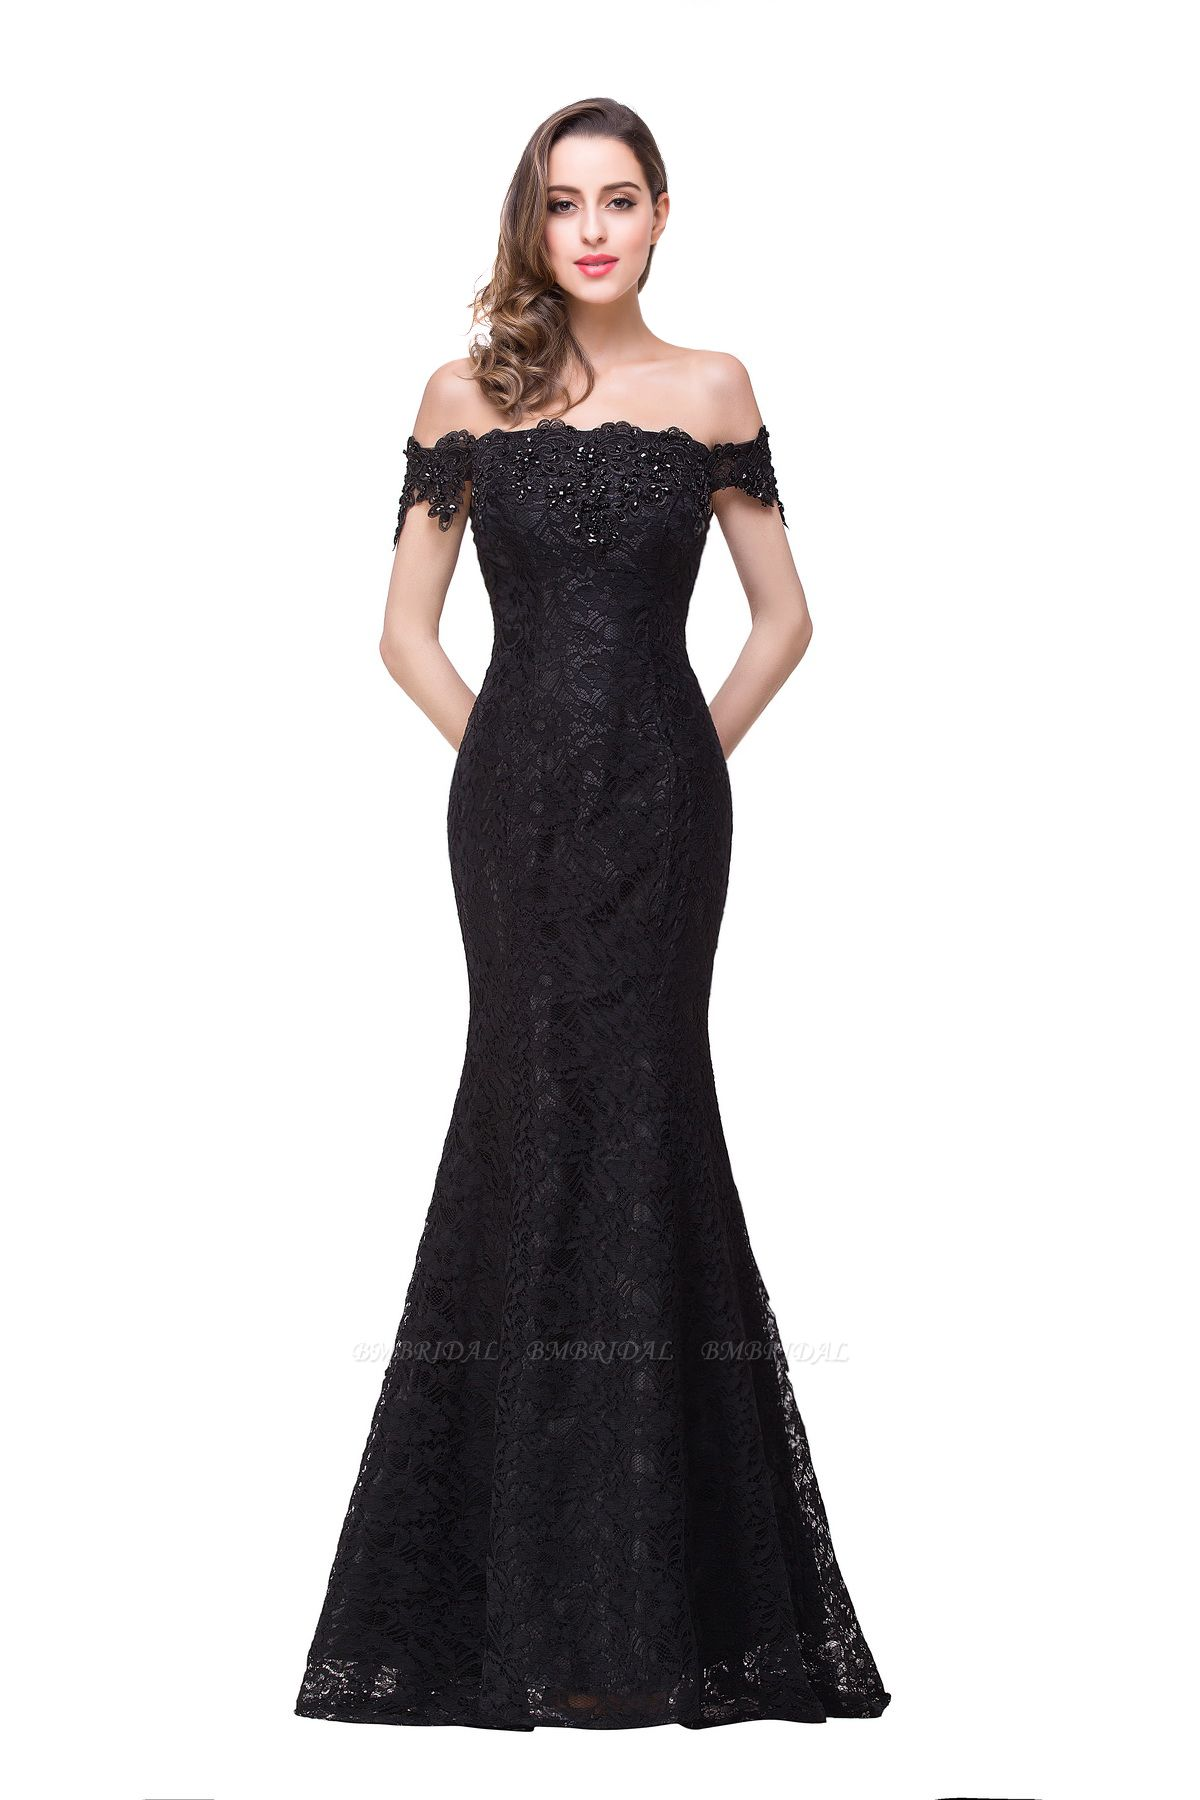 BMbridal Off-the-Shoulder Lace Mermaid Prom Dress Long Evening Party Gowns Online